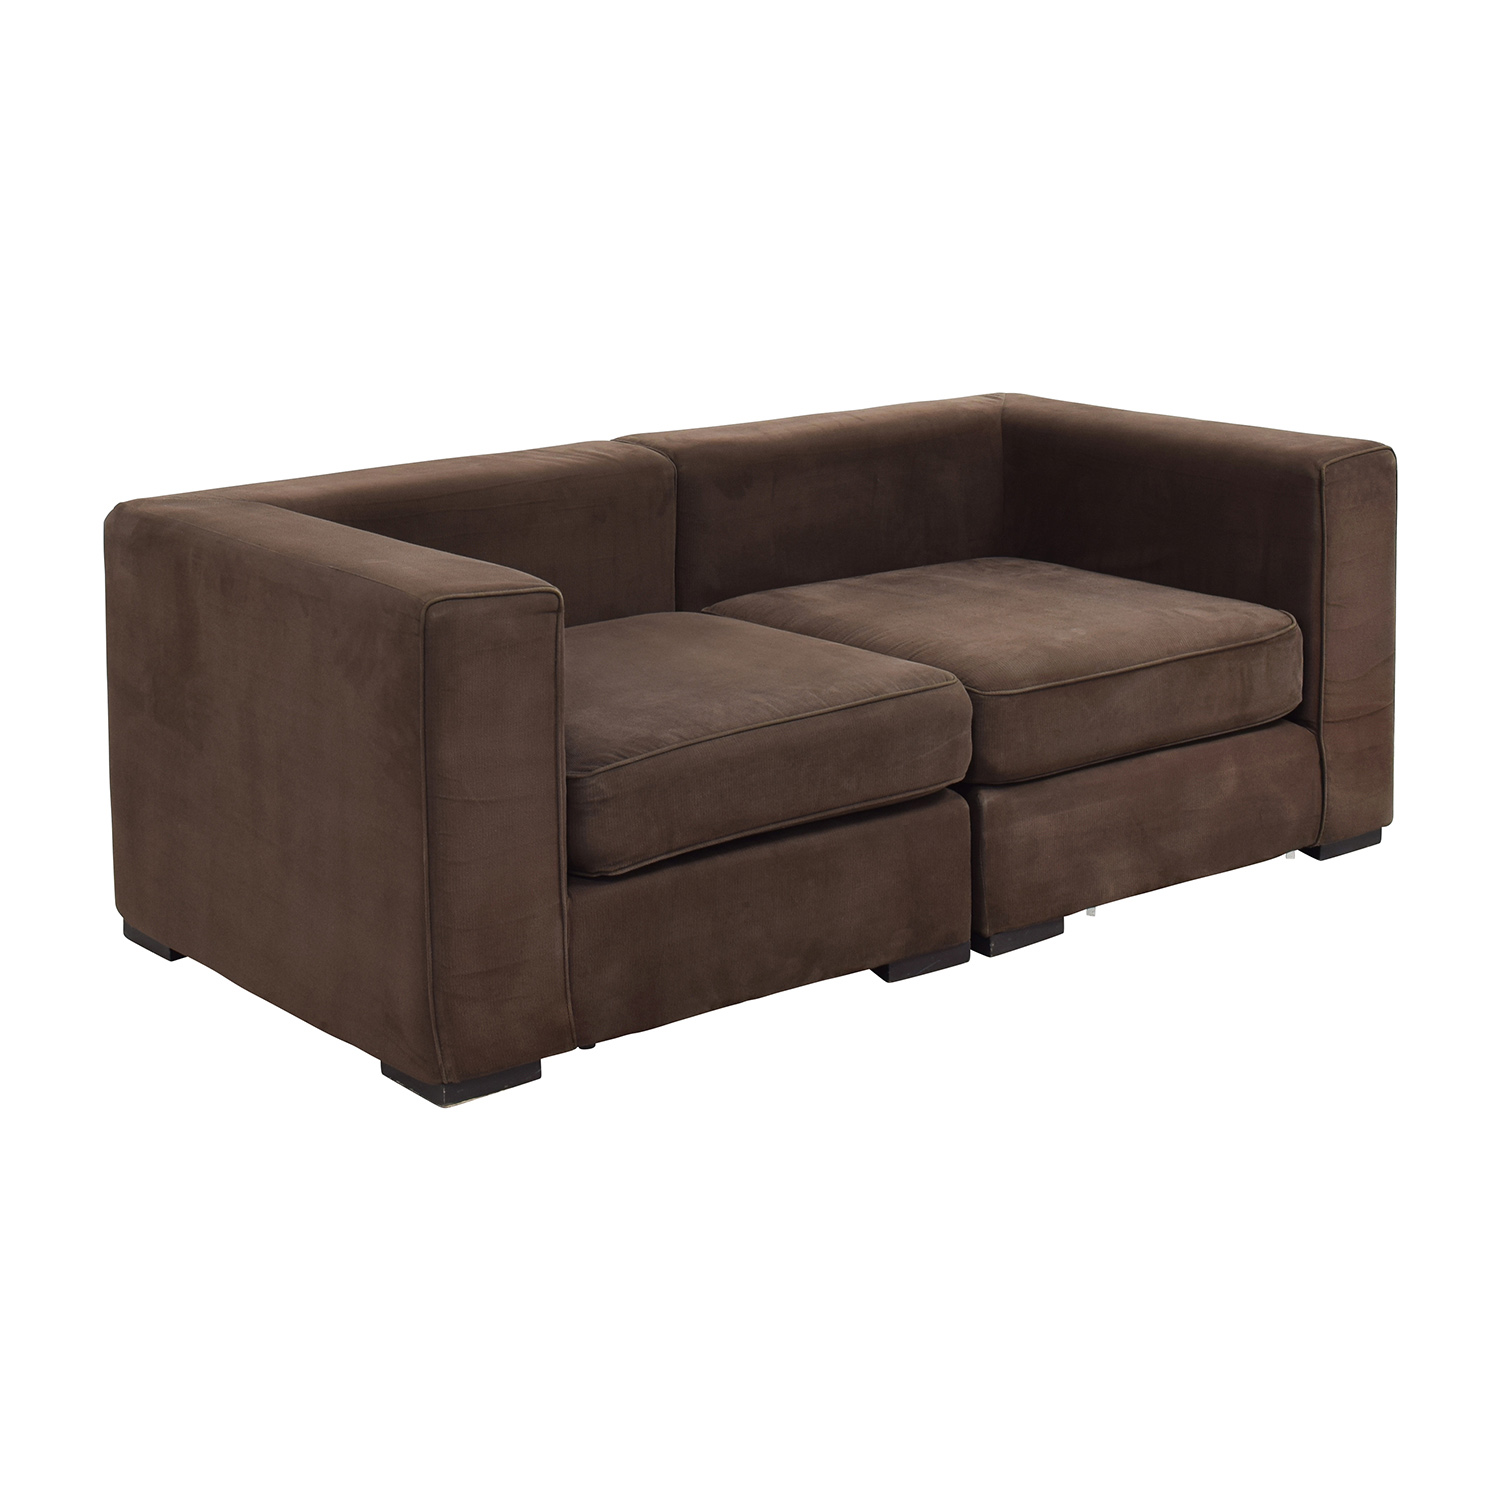 59 off west elm west elm brown modular sofa sofas With modular sectional sofa west elm